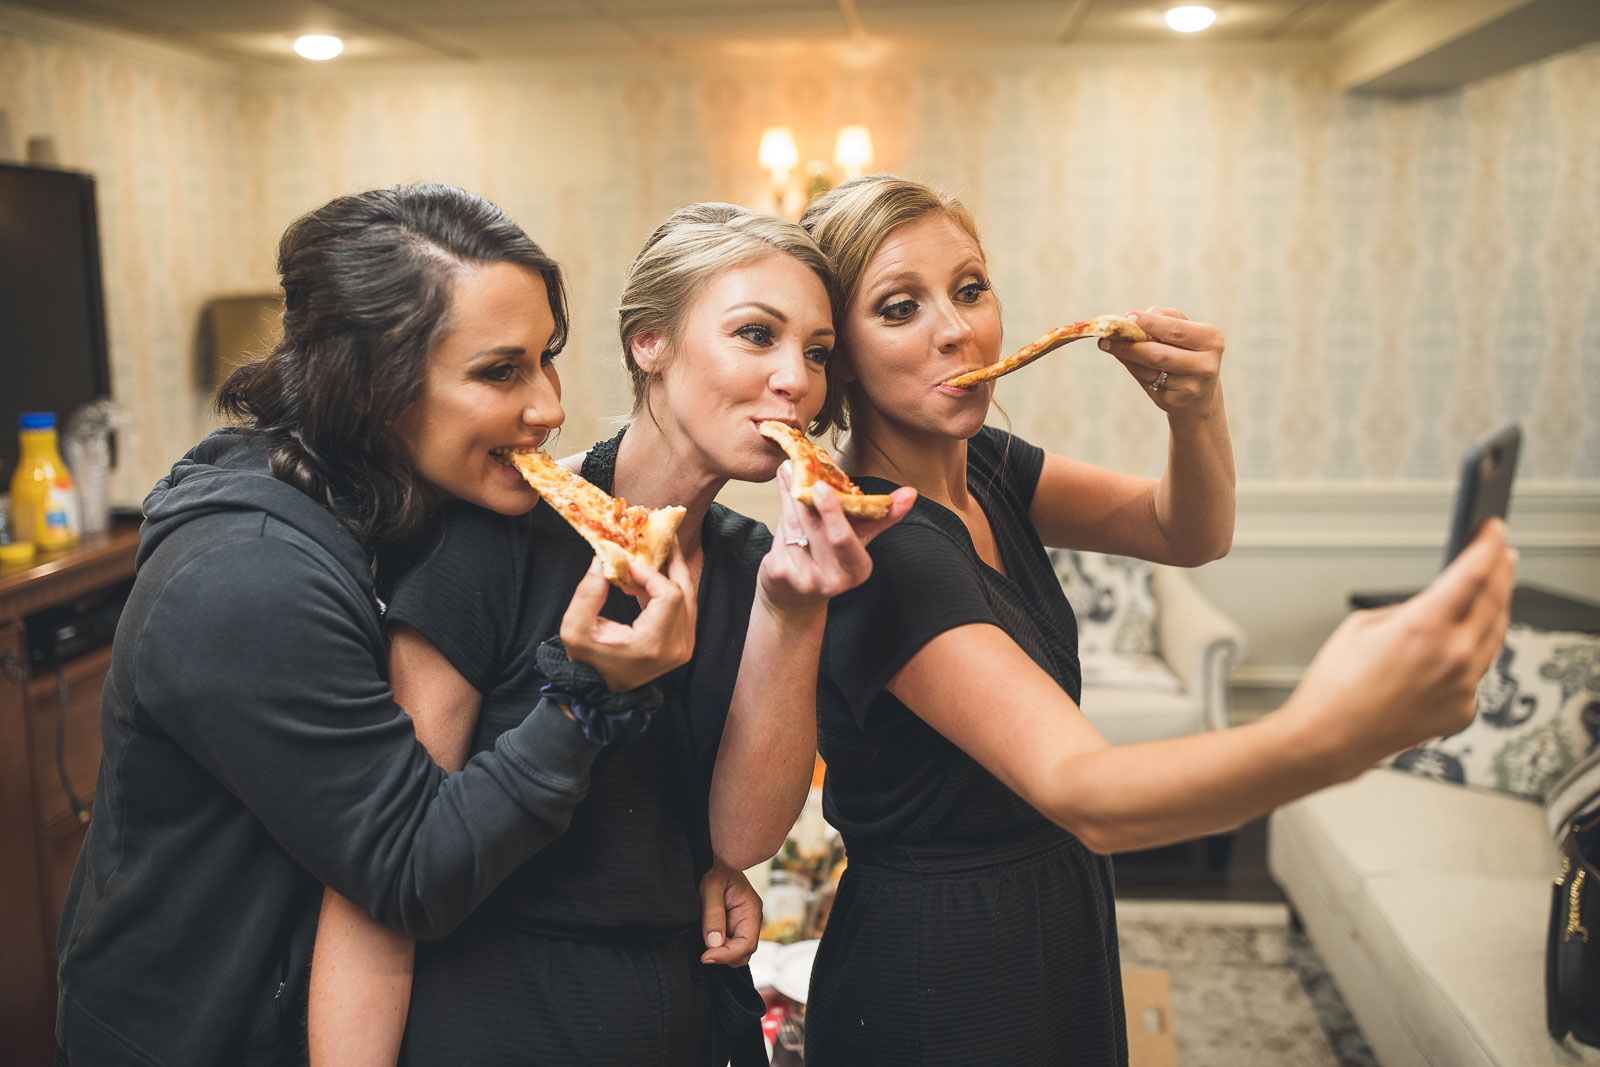 Bridesmaids Eating Pizza